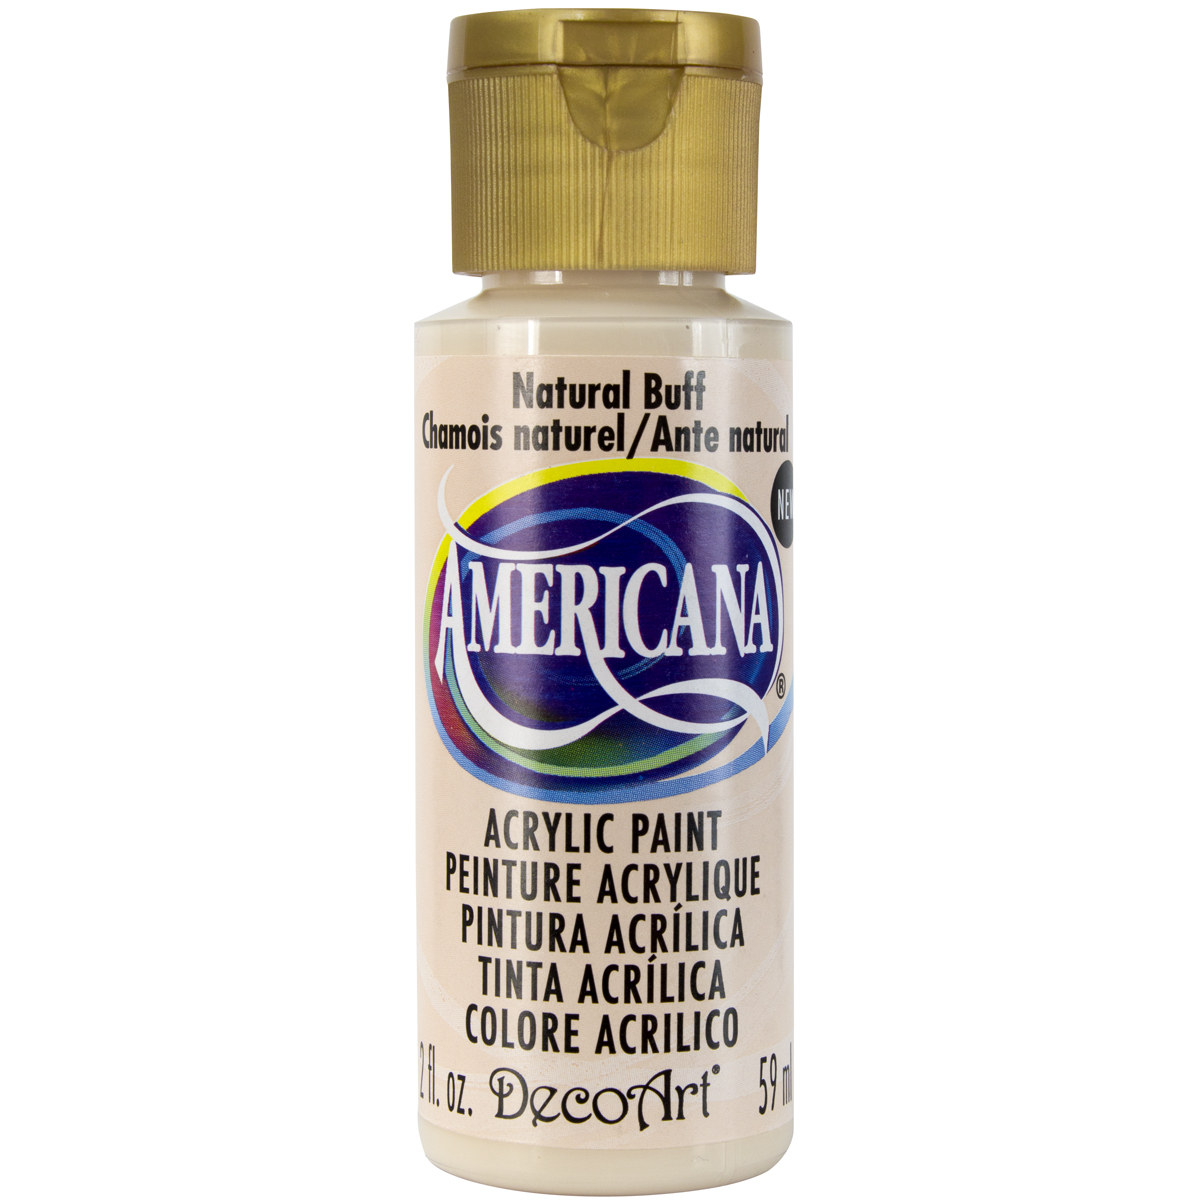 Americana Acrylic Paint 2oz-Natural Buff - Opaque